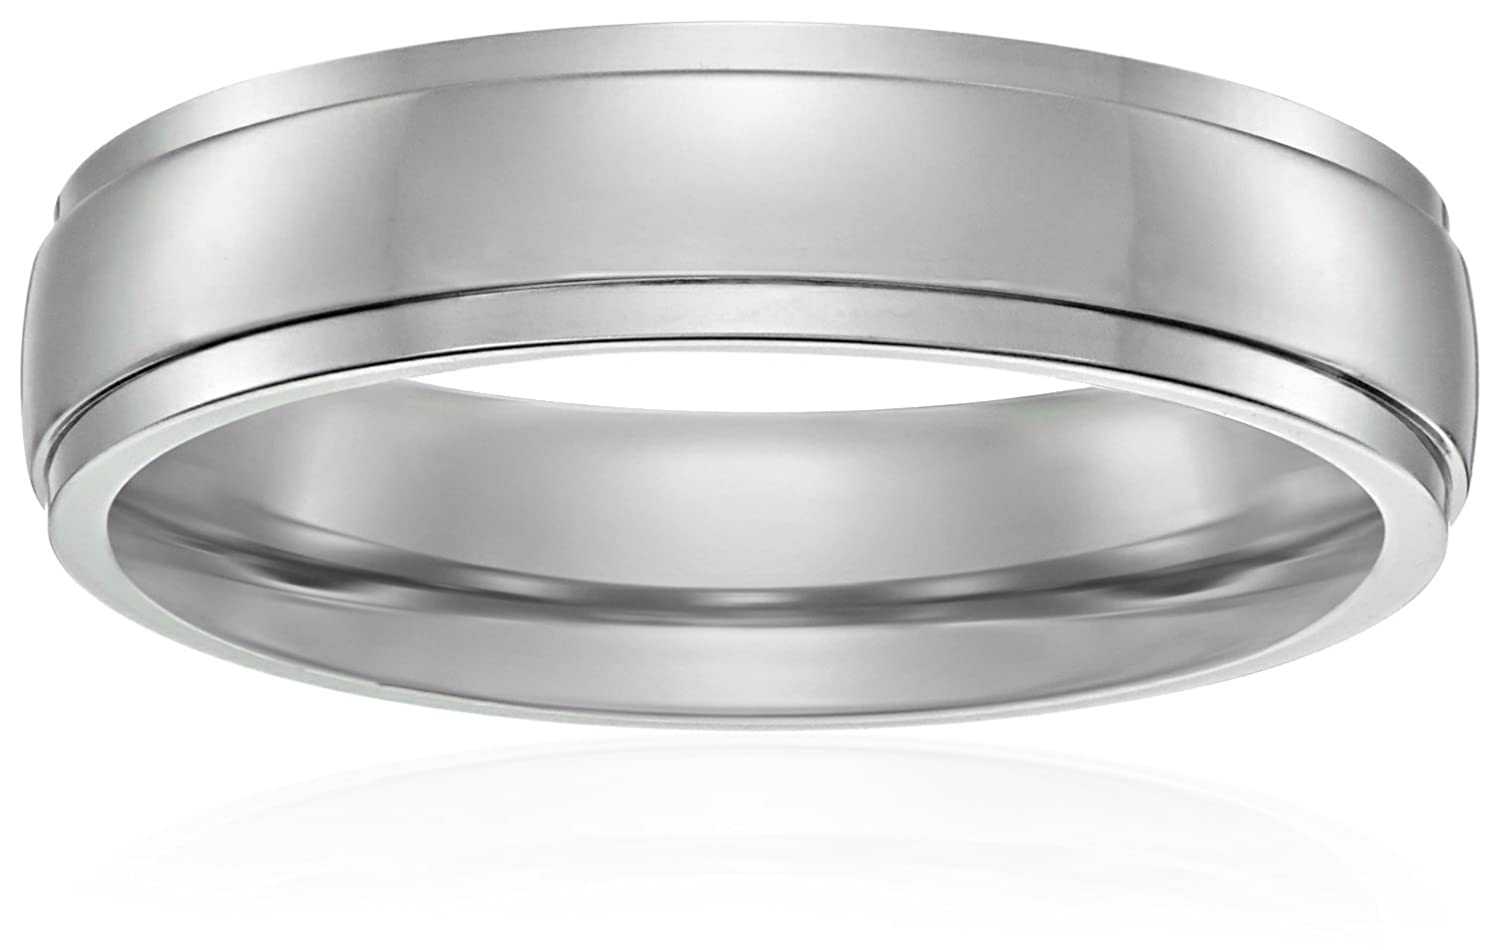 Men's Titanium 5mm Comfort Fit Plain Wedding Band with High Polish Finish and High Polish Bright Edges Amazon Collection